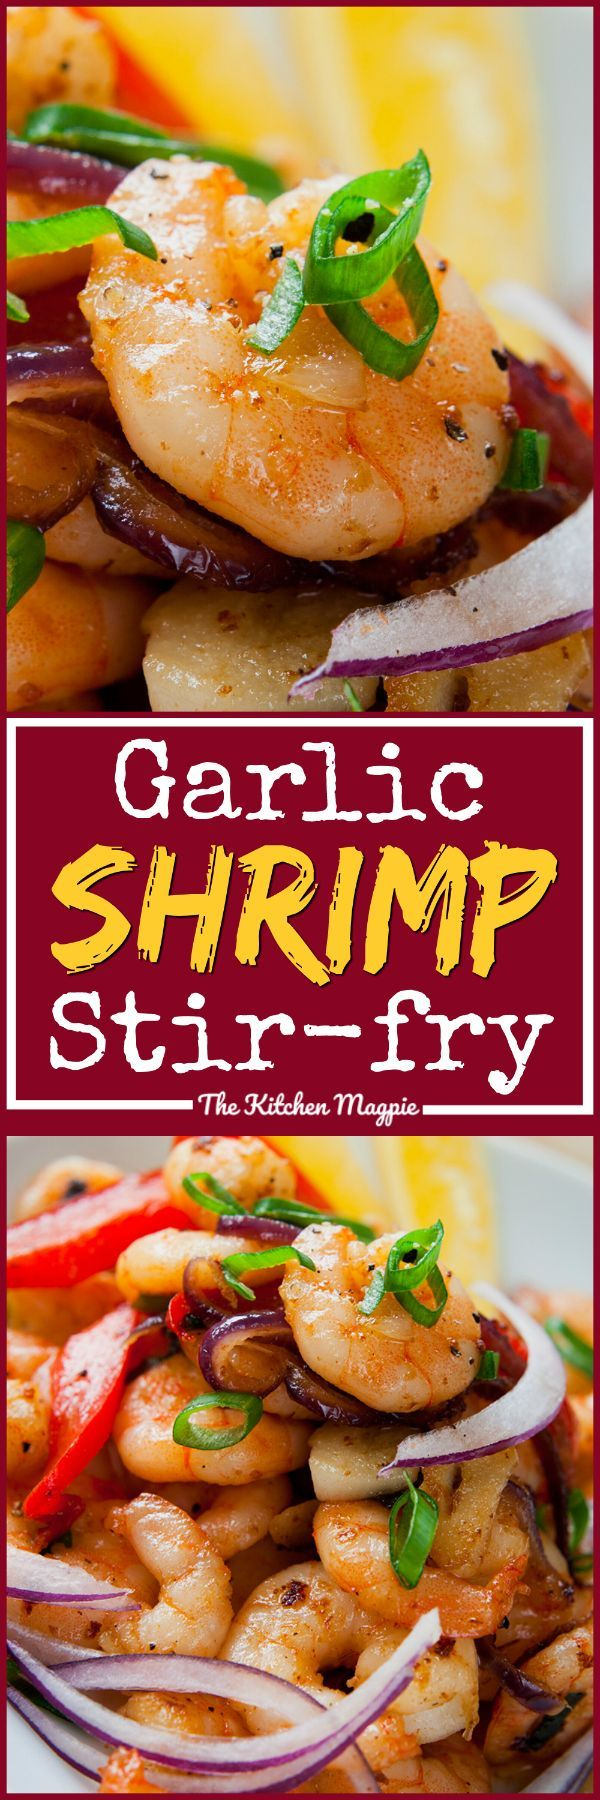 Simple & Easy Garlic Shrimp Stir-Fry with Peppers & Onions. Recipe from @kitchenmagpie #shrimp #recipes #healthyrecipes